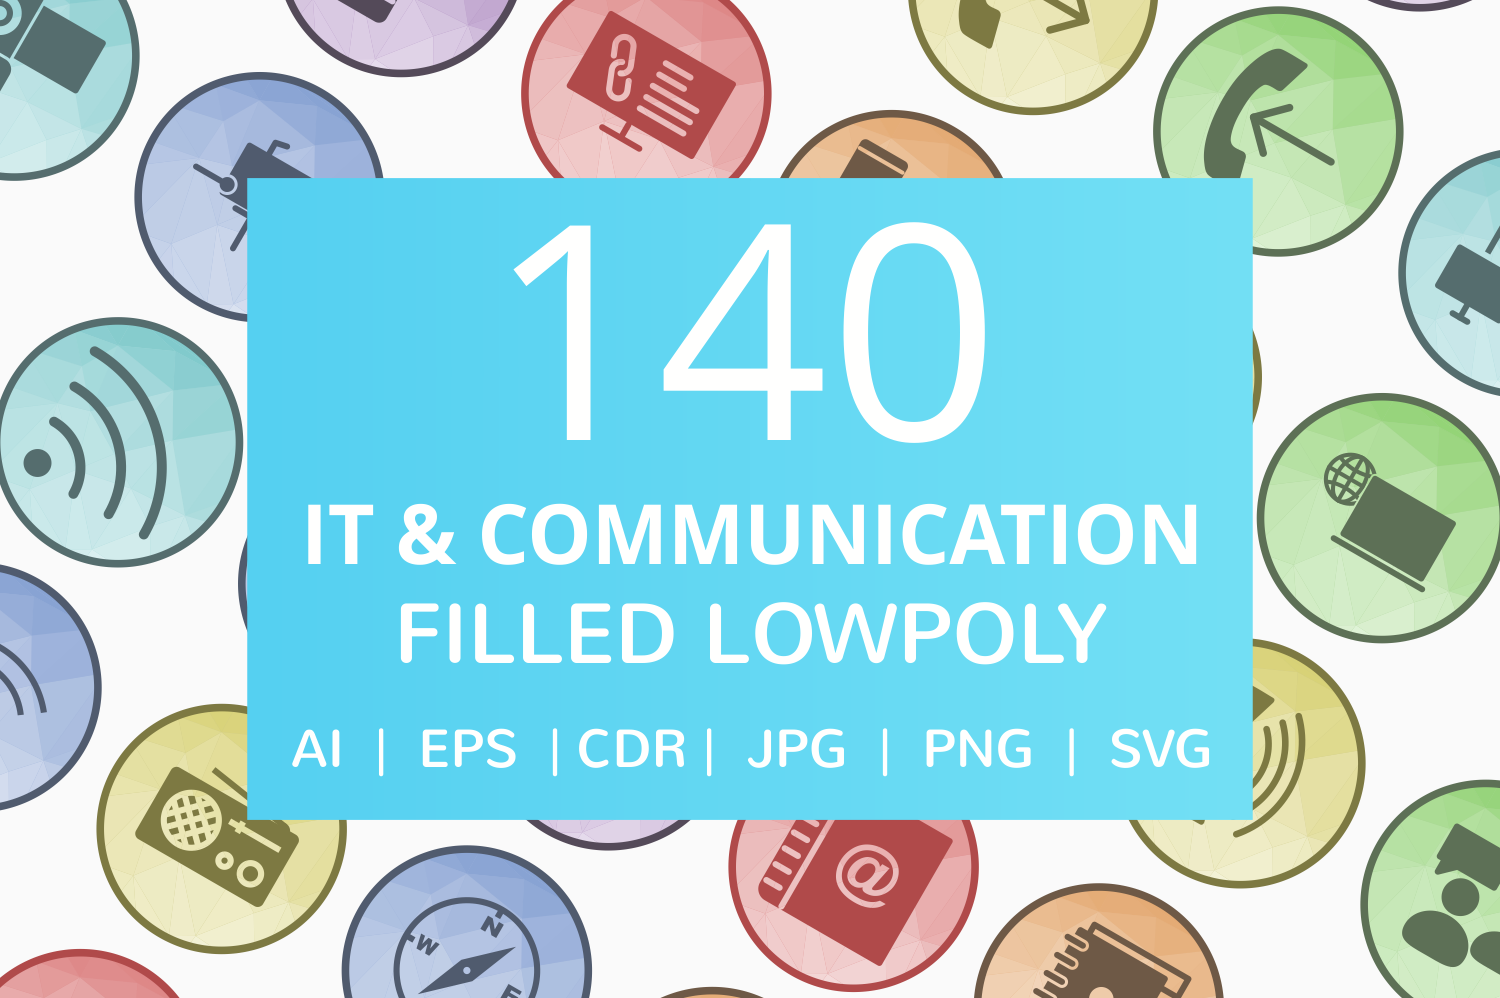 140 IT & Communication Filled Low Poly Icons example image 1